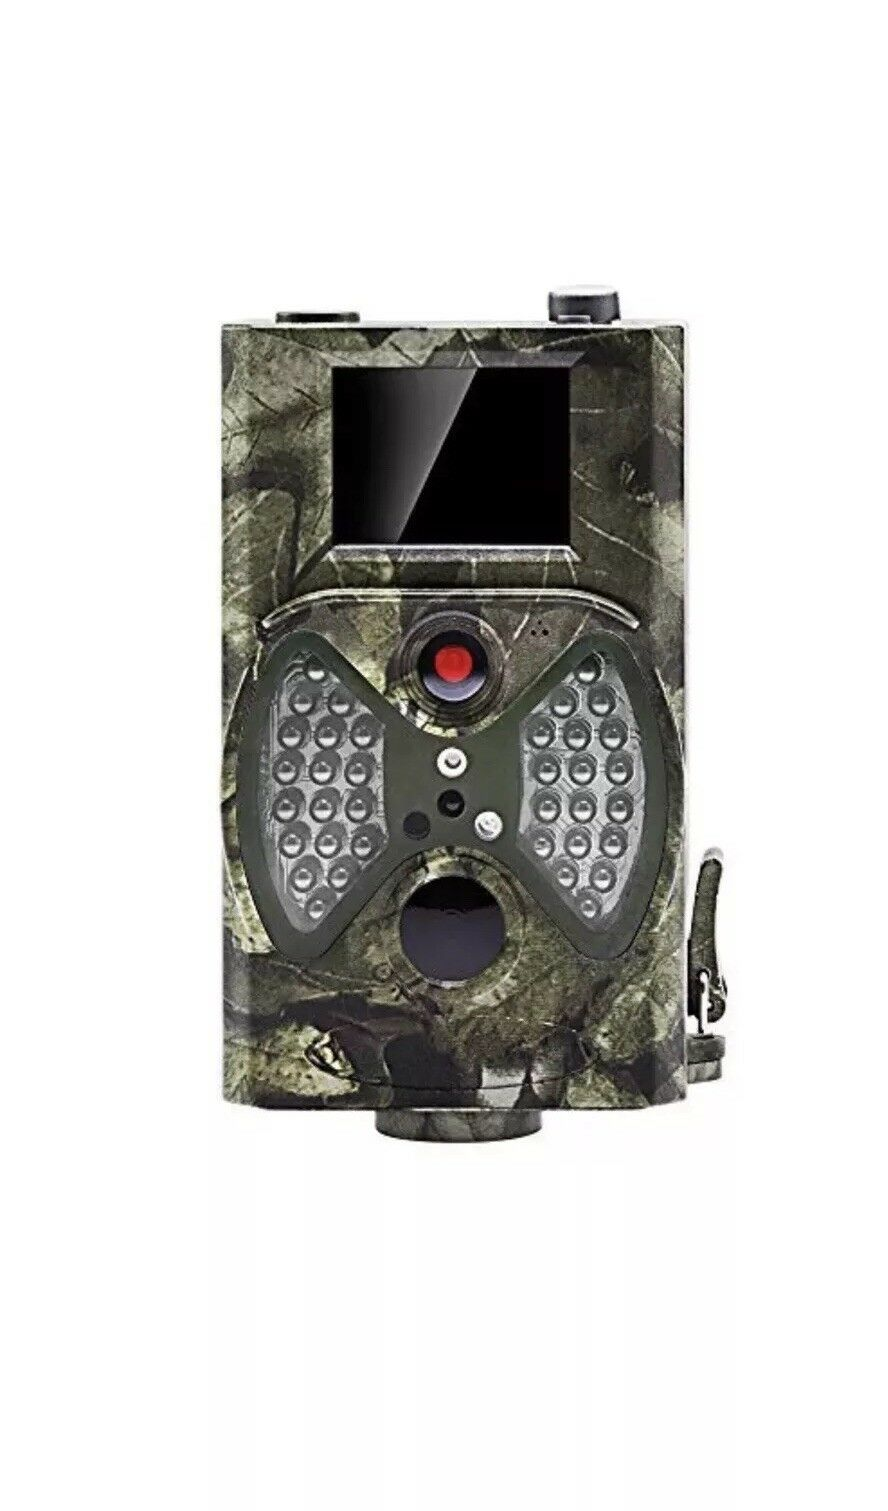 Distianert Trail Game Camera Hunting Wildlife Hunting Camera Camera with InfraROT Night Vision 0bd41b